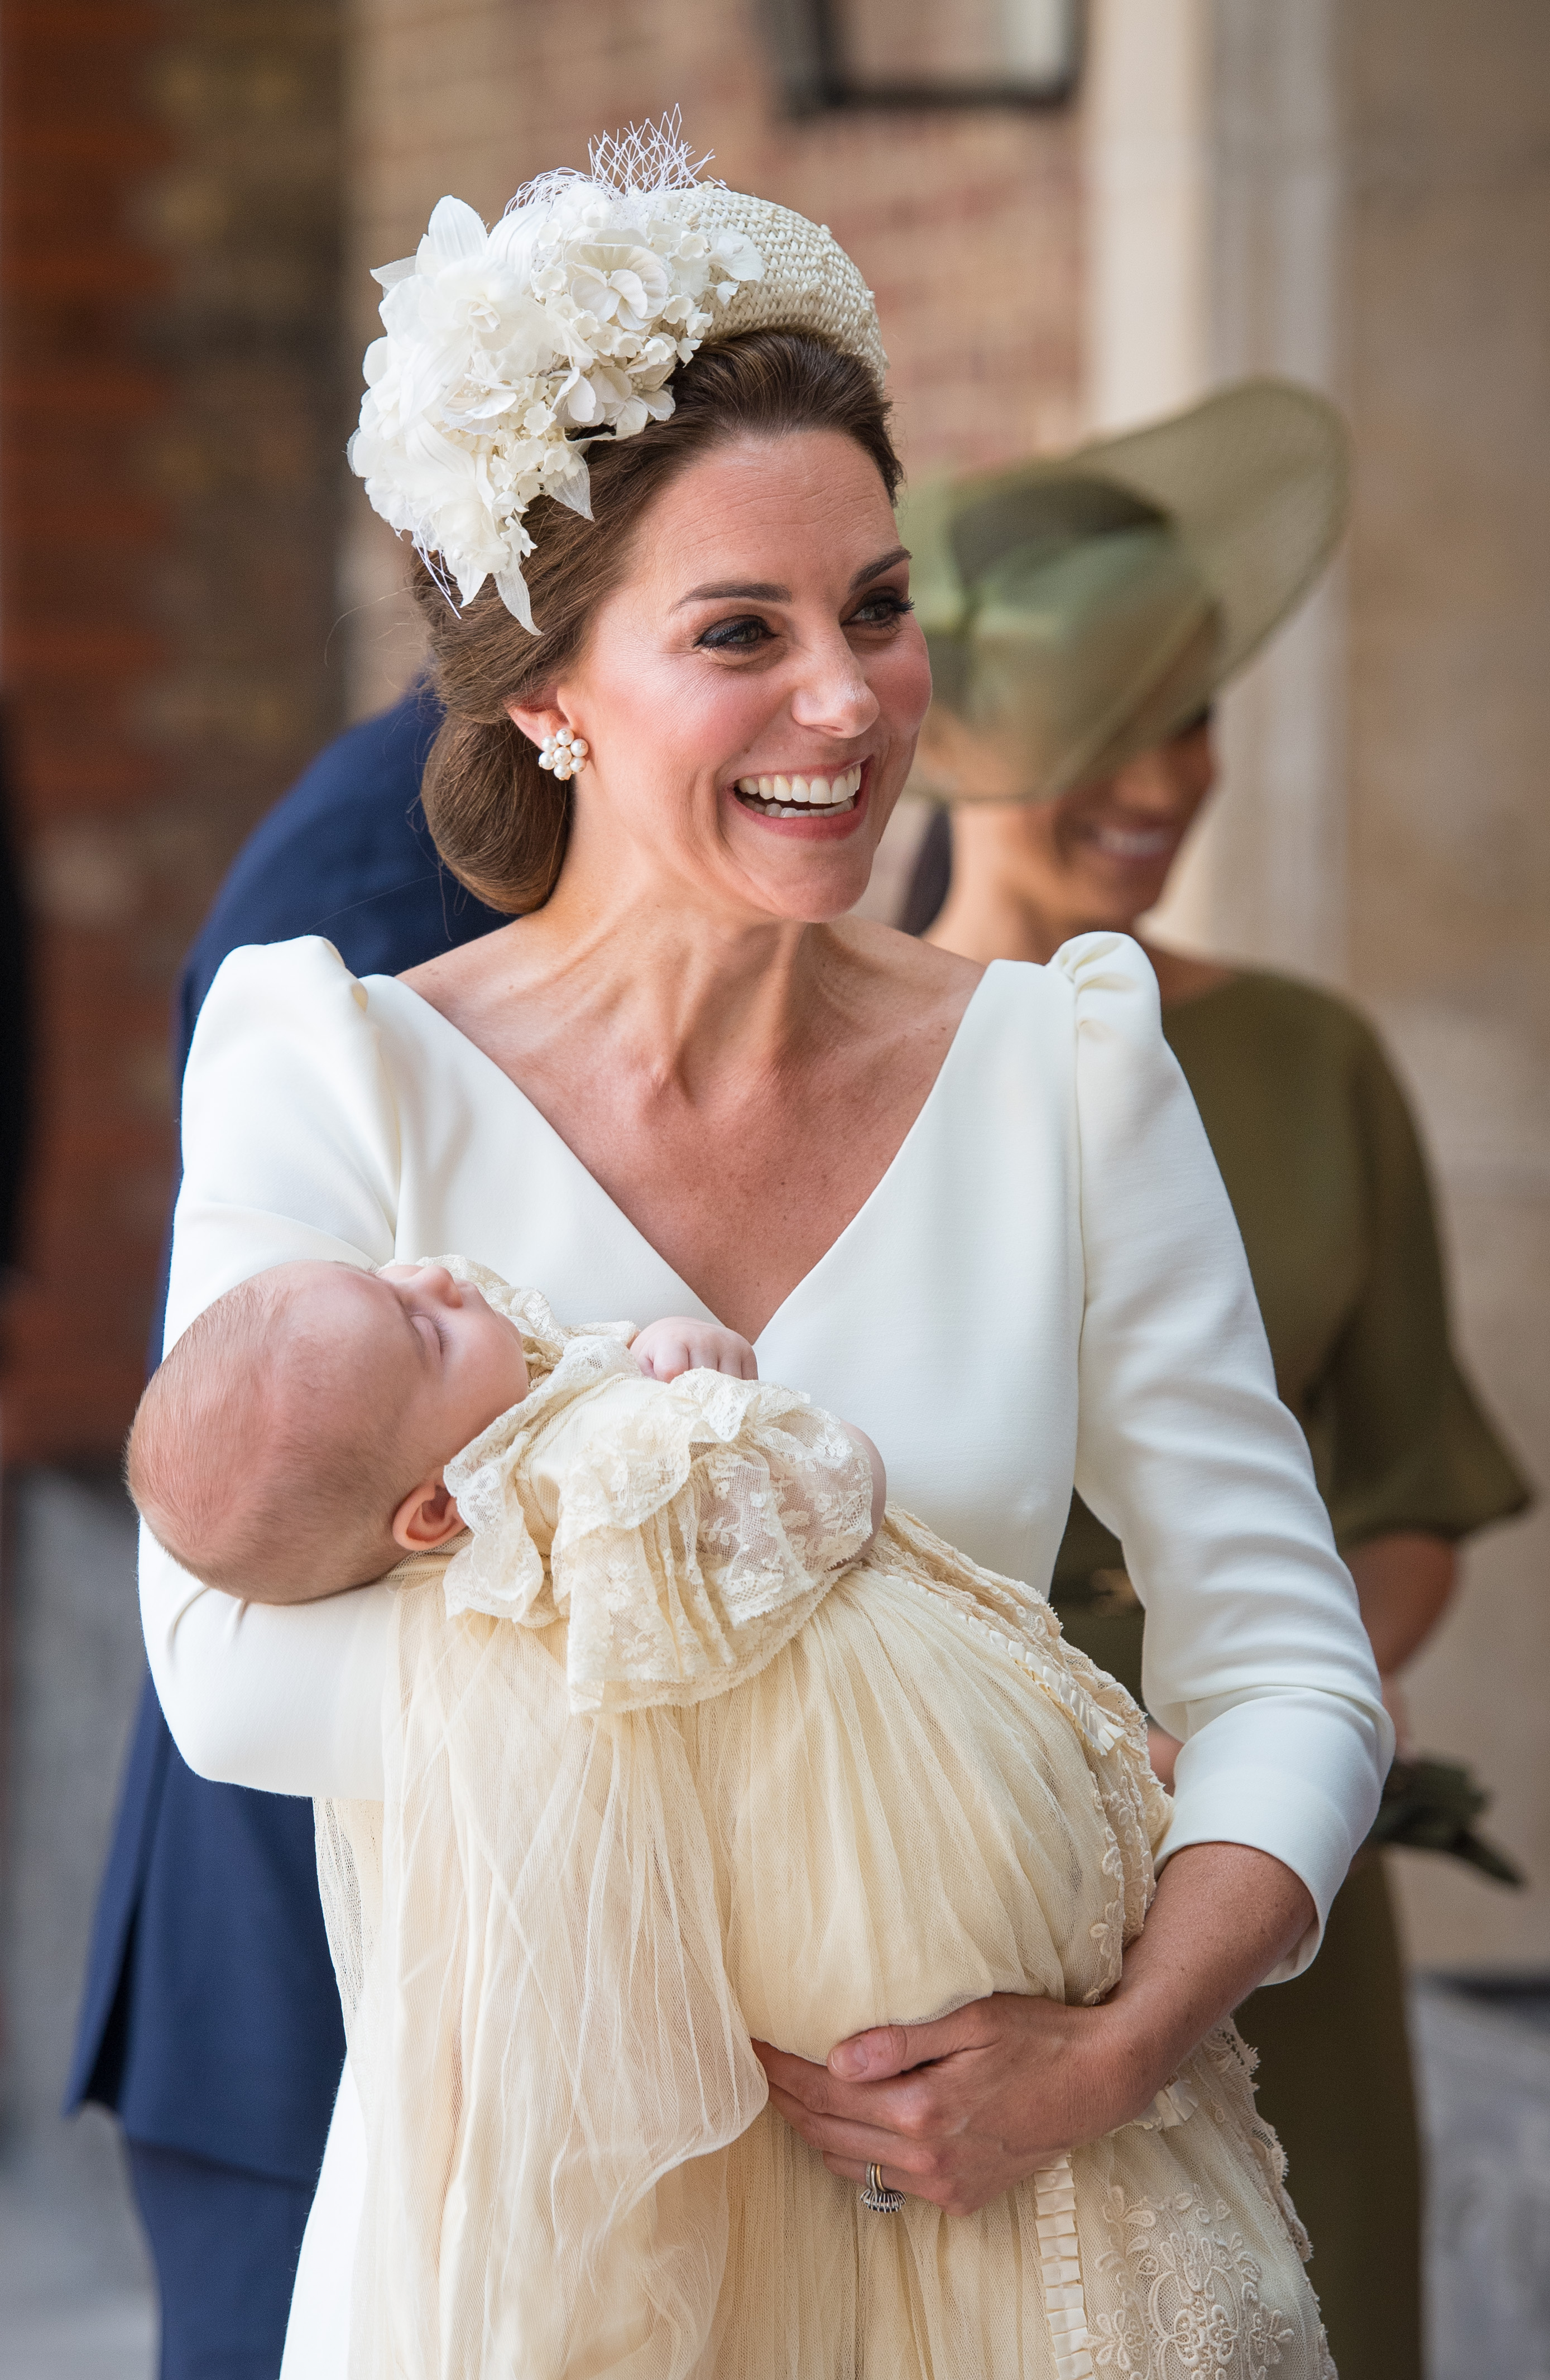 Catherine, Duchess of Cambridge, carries Prince Louis as they arrive for his christening service at St James's Palace on July 09, 2018 in London, England. (Getty Images)